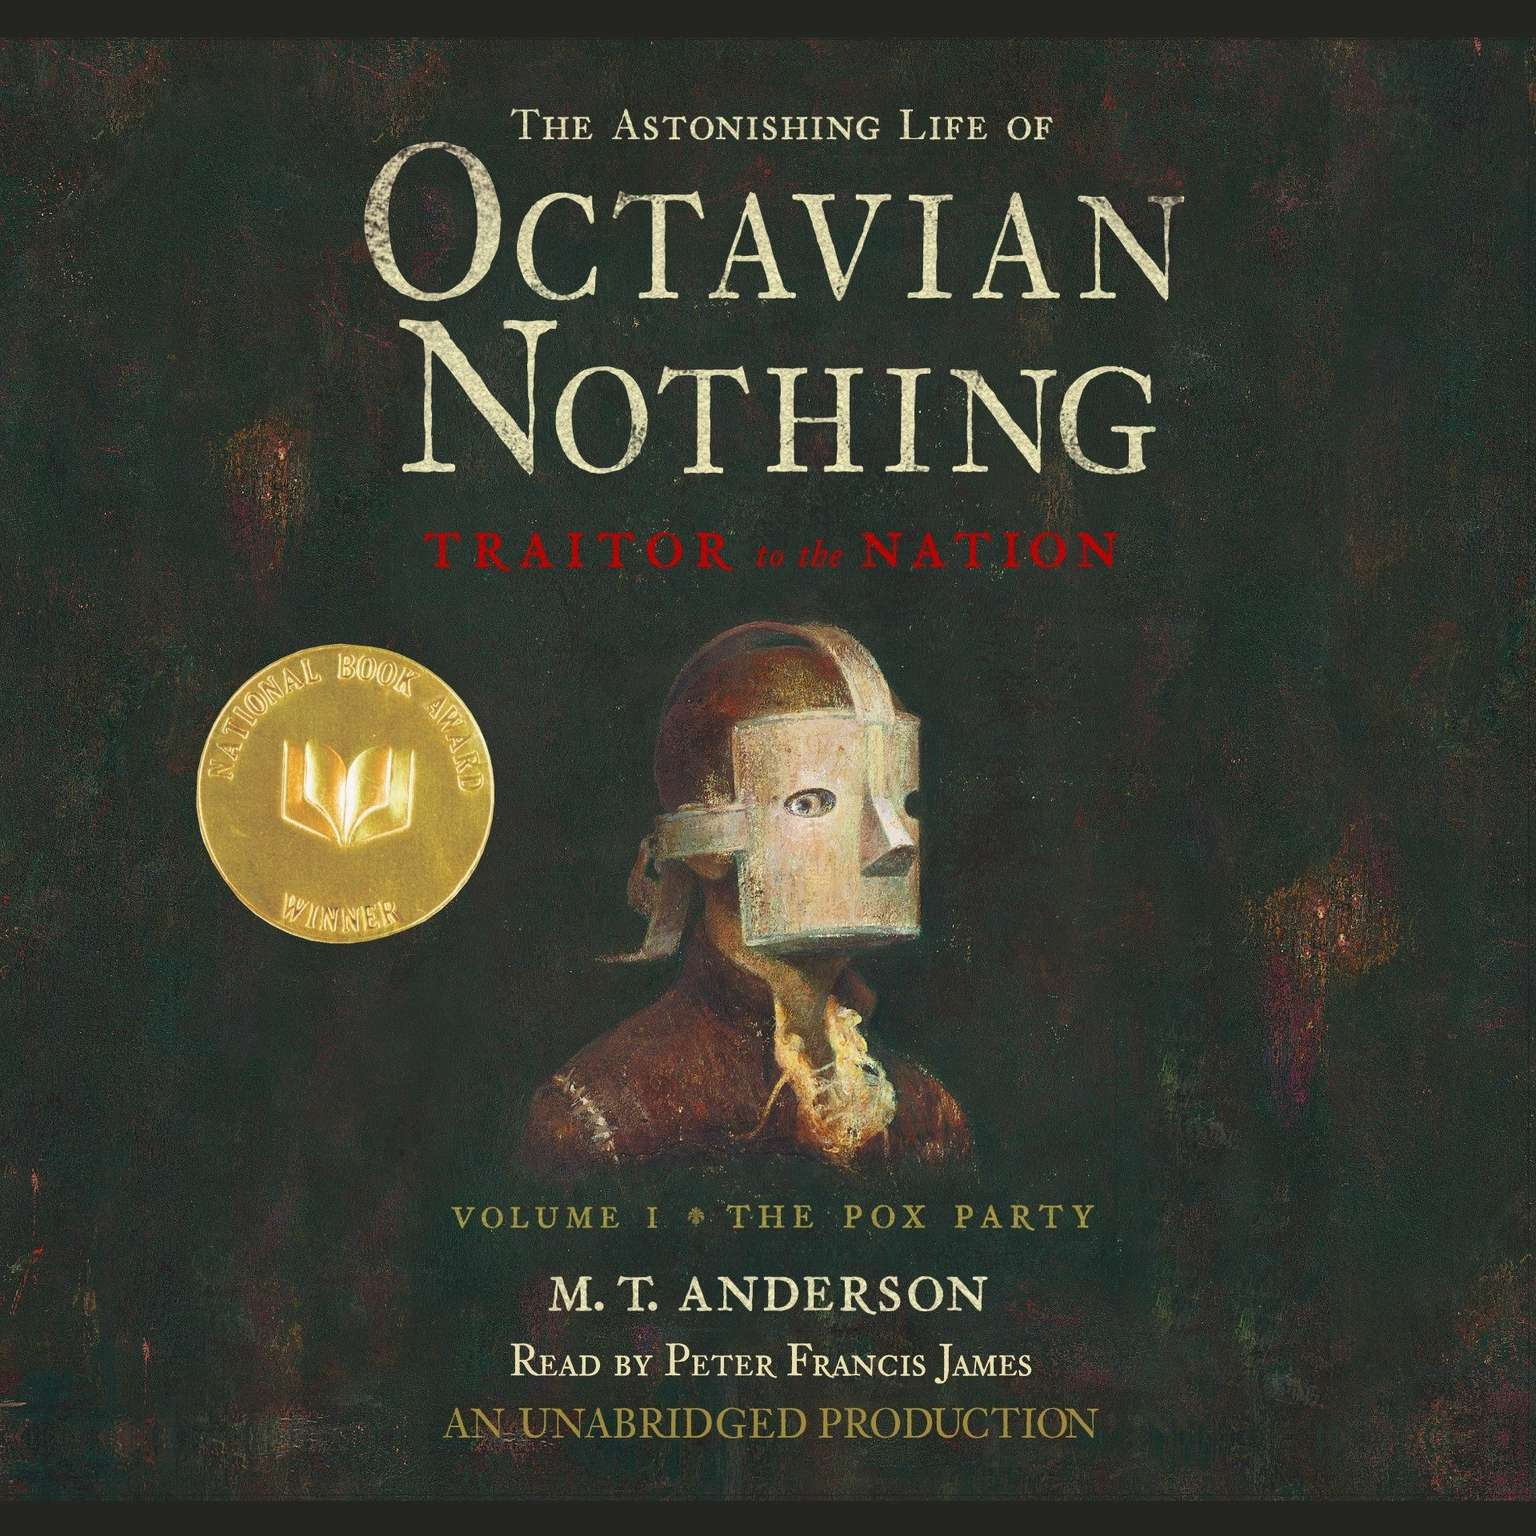 Printable The Astonishing Life of Octavian Nothing, Traitor to the Nation, Vol. 1: The Pox Party Audiobook Cover Art